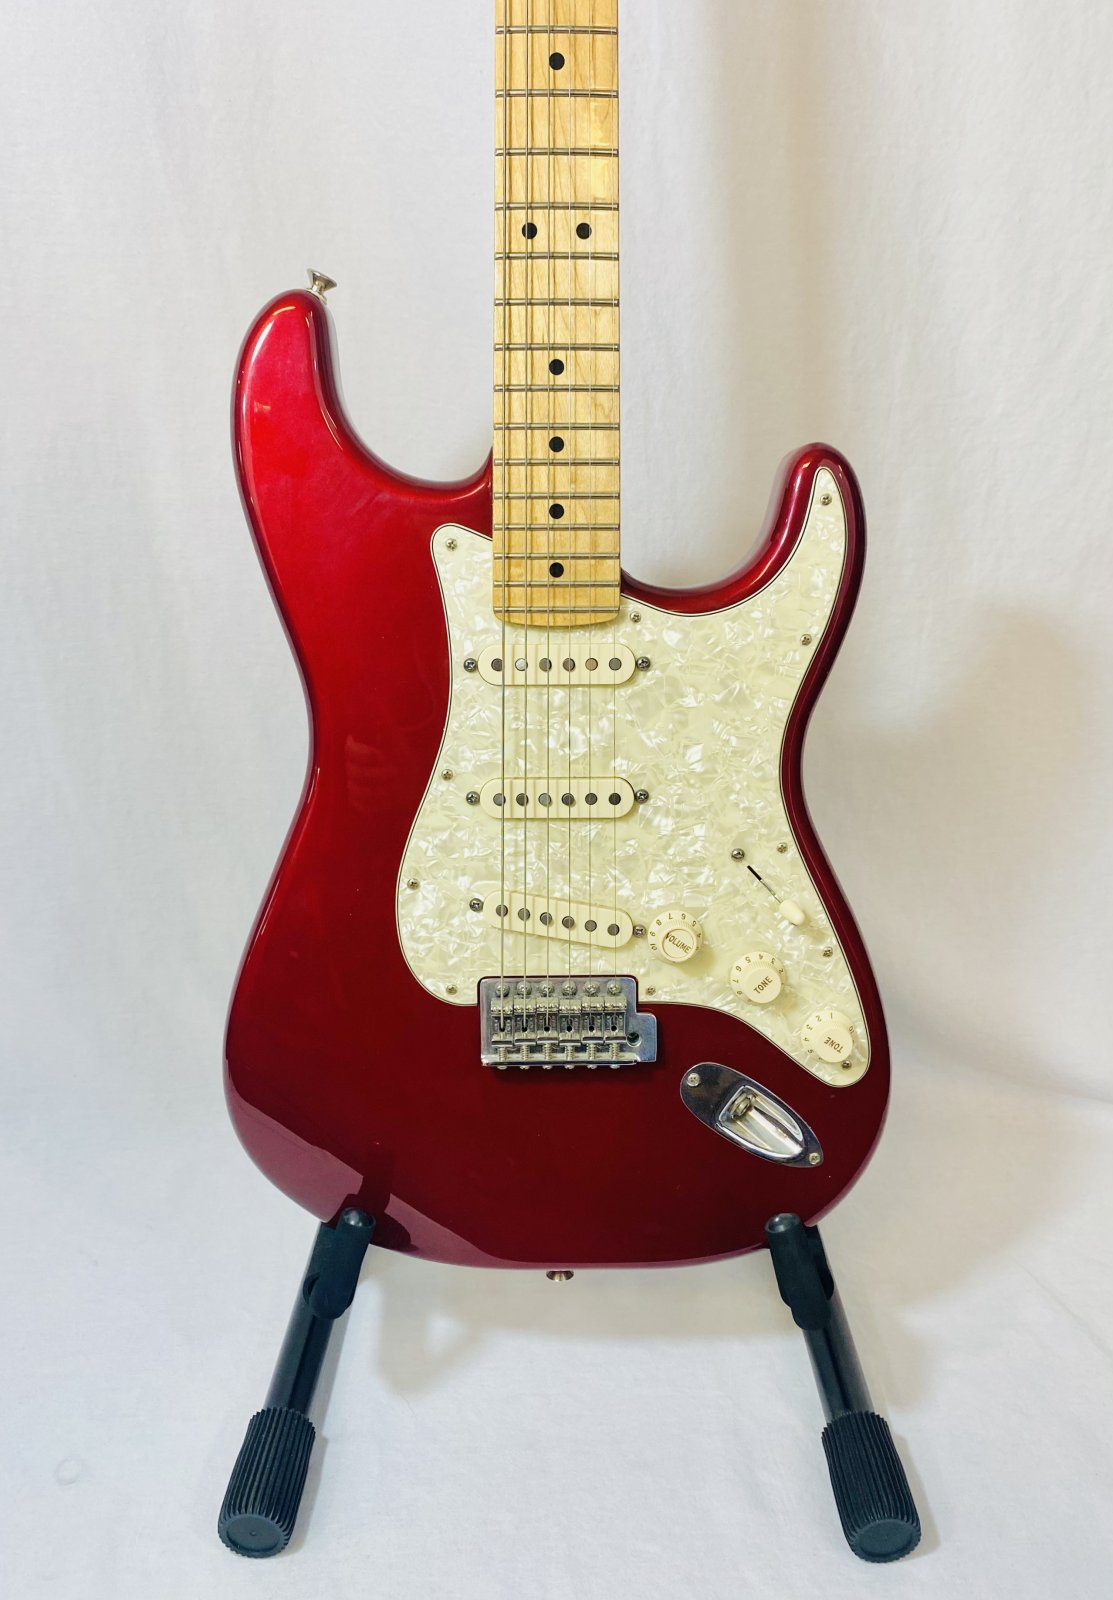 FENDER STRATOCASTER MIM PLAYERS ELECTRIC GUITAR IN CANDY APPLE RED COMES W/BAG